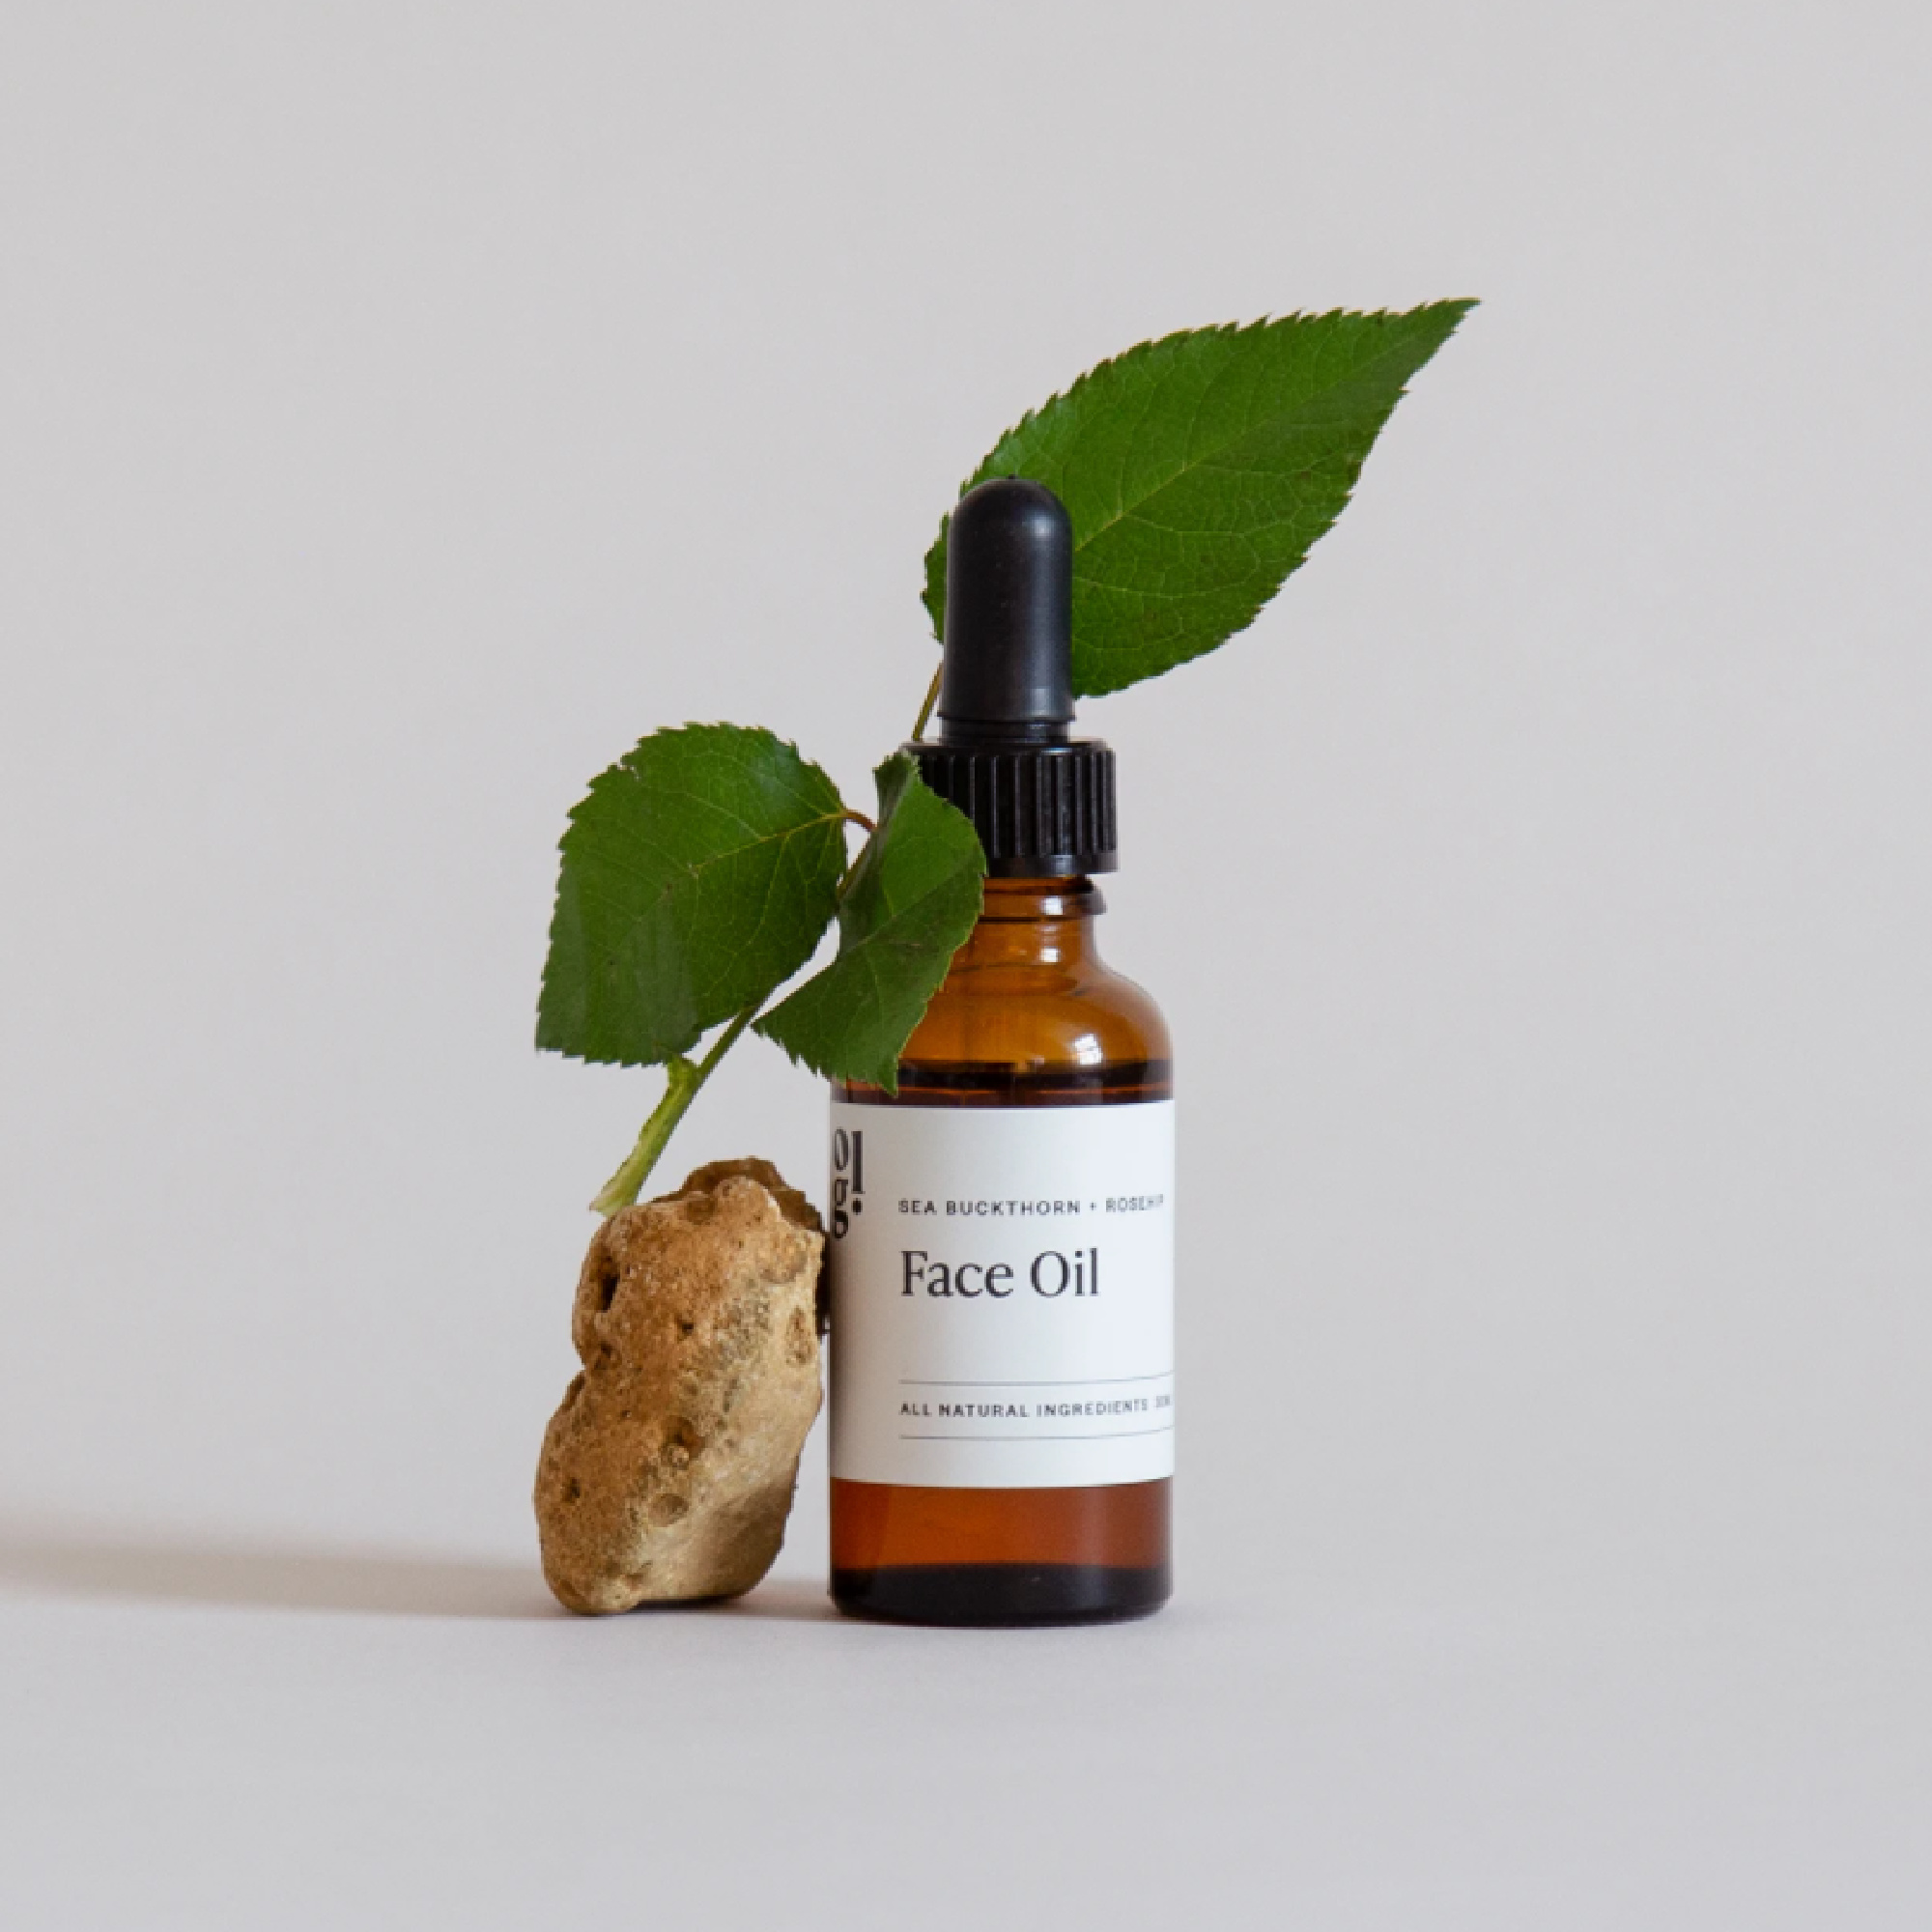 Sea-buckthorn and Rosehip Seed Botanical Face Oil by Our Lovely Goods